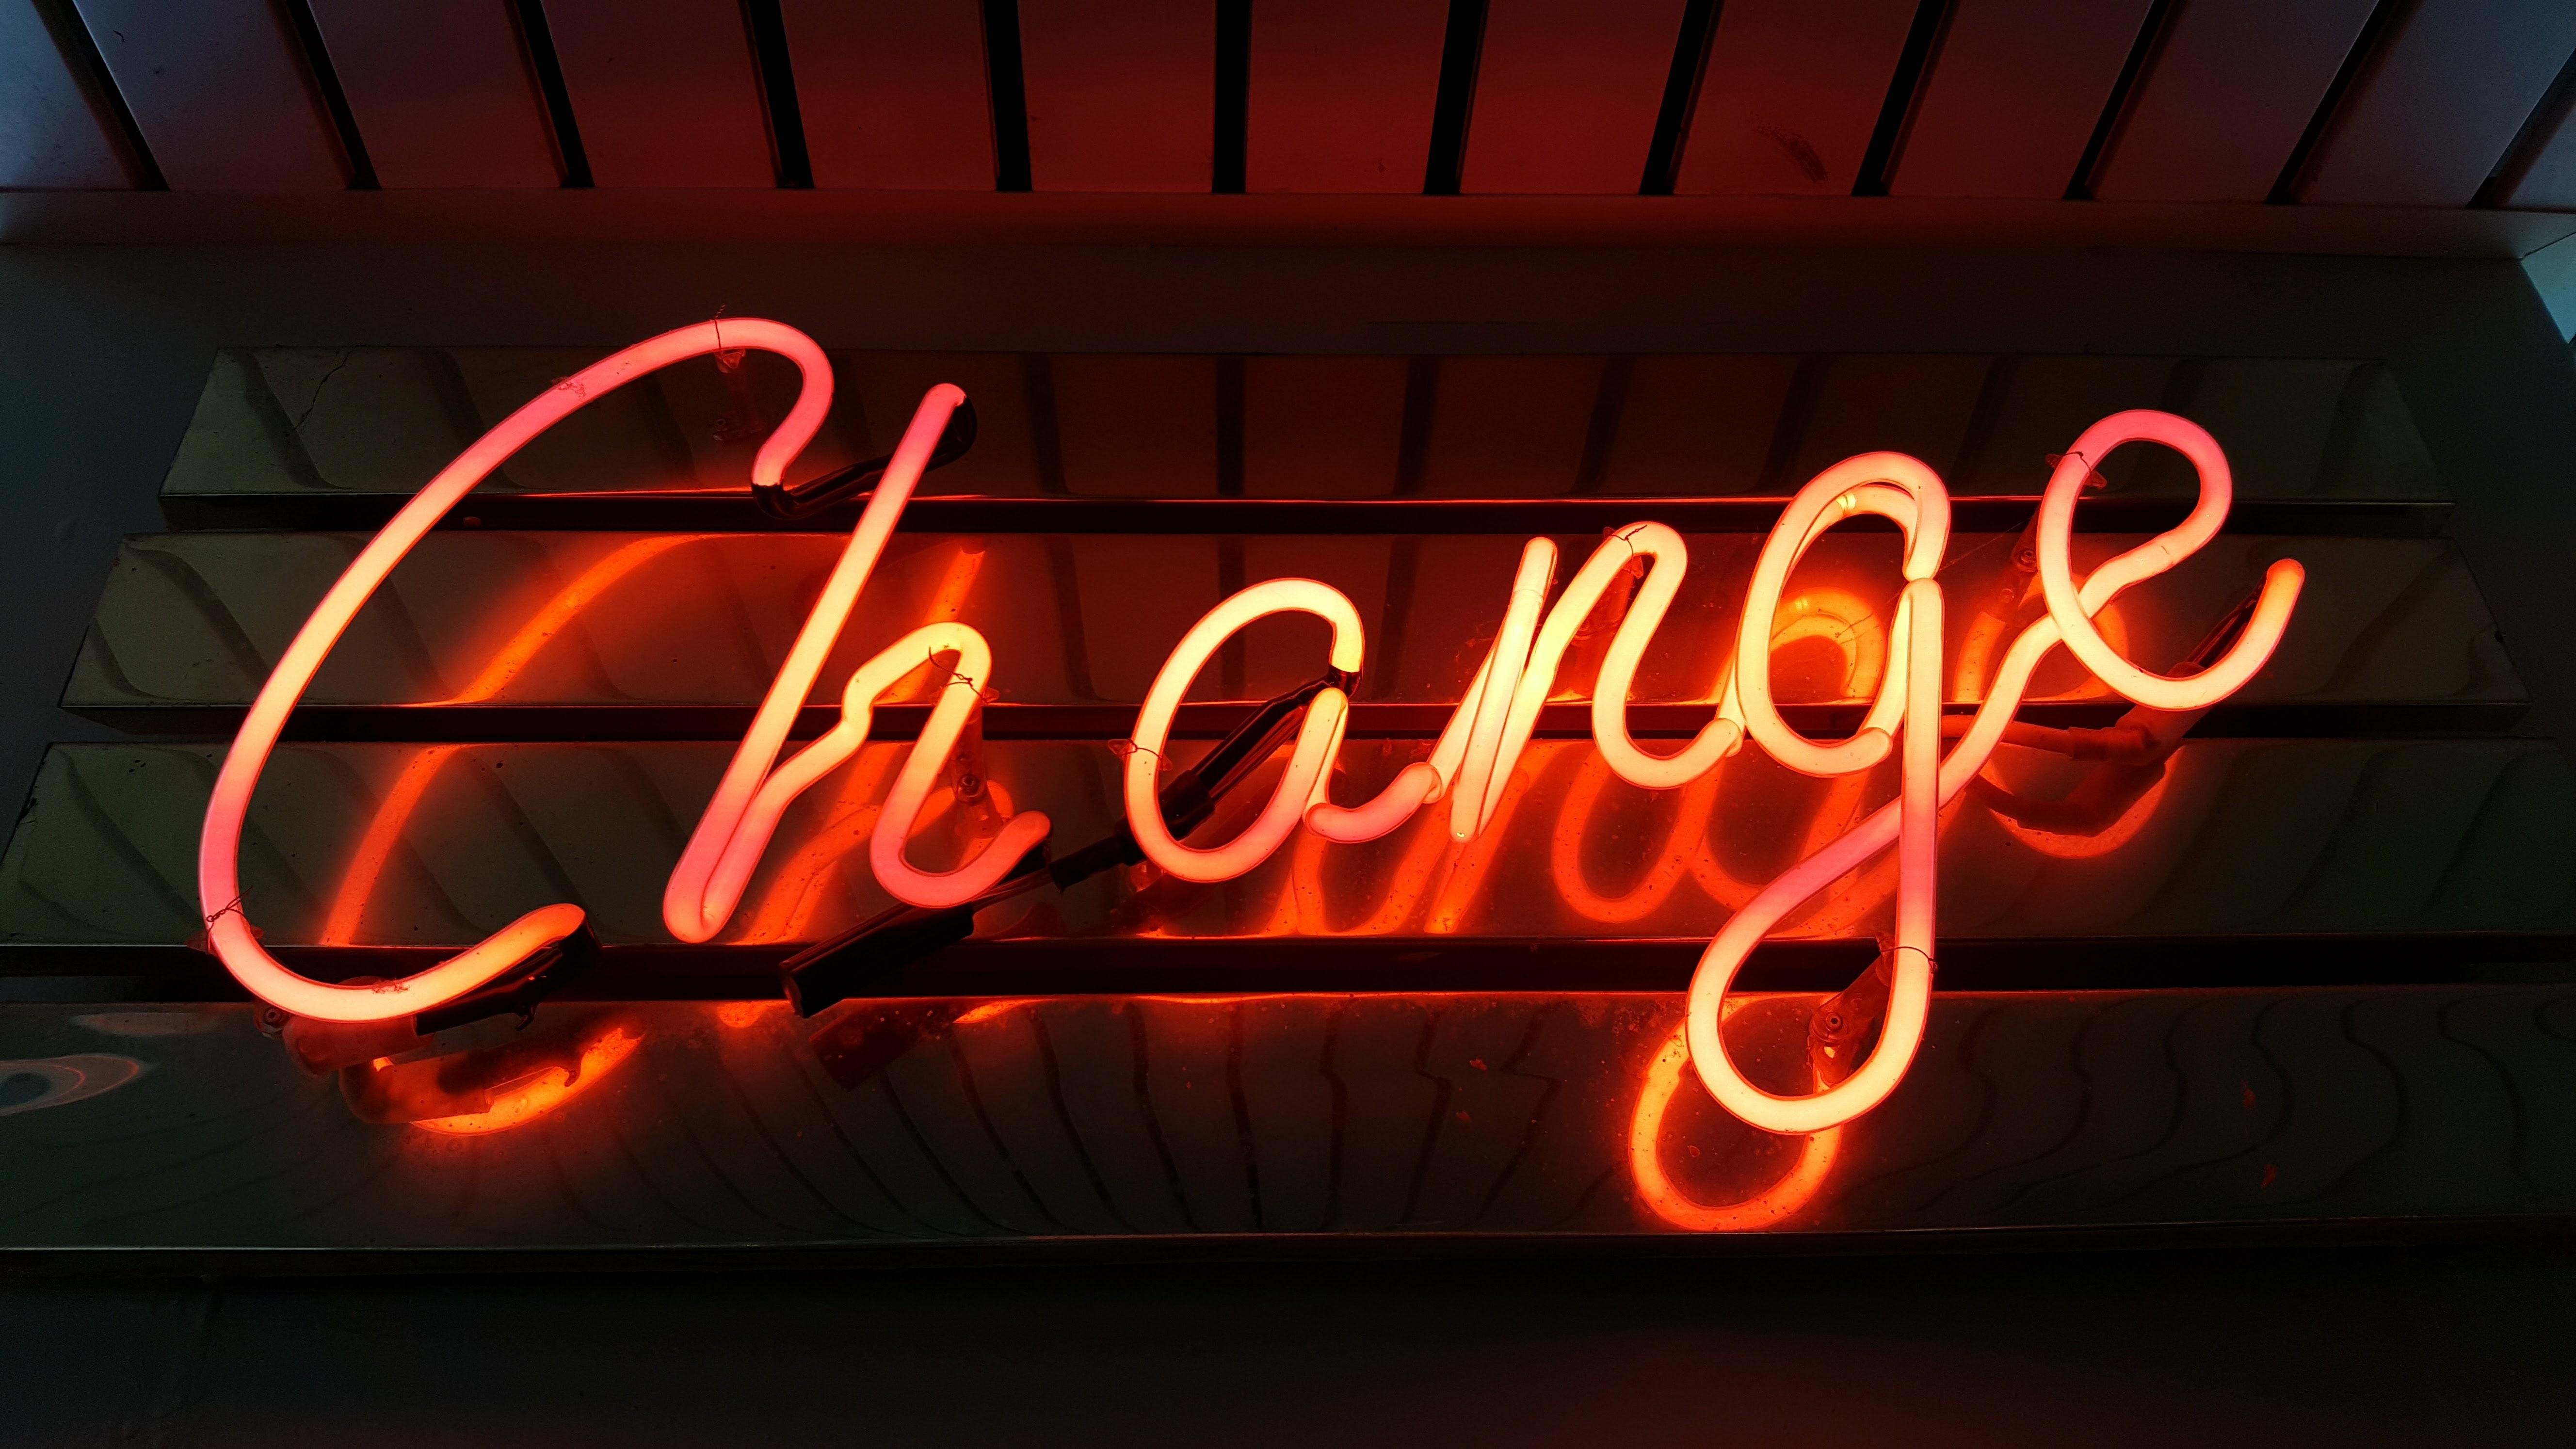 neon sign spelling out the word 'Change'